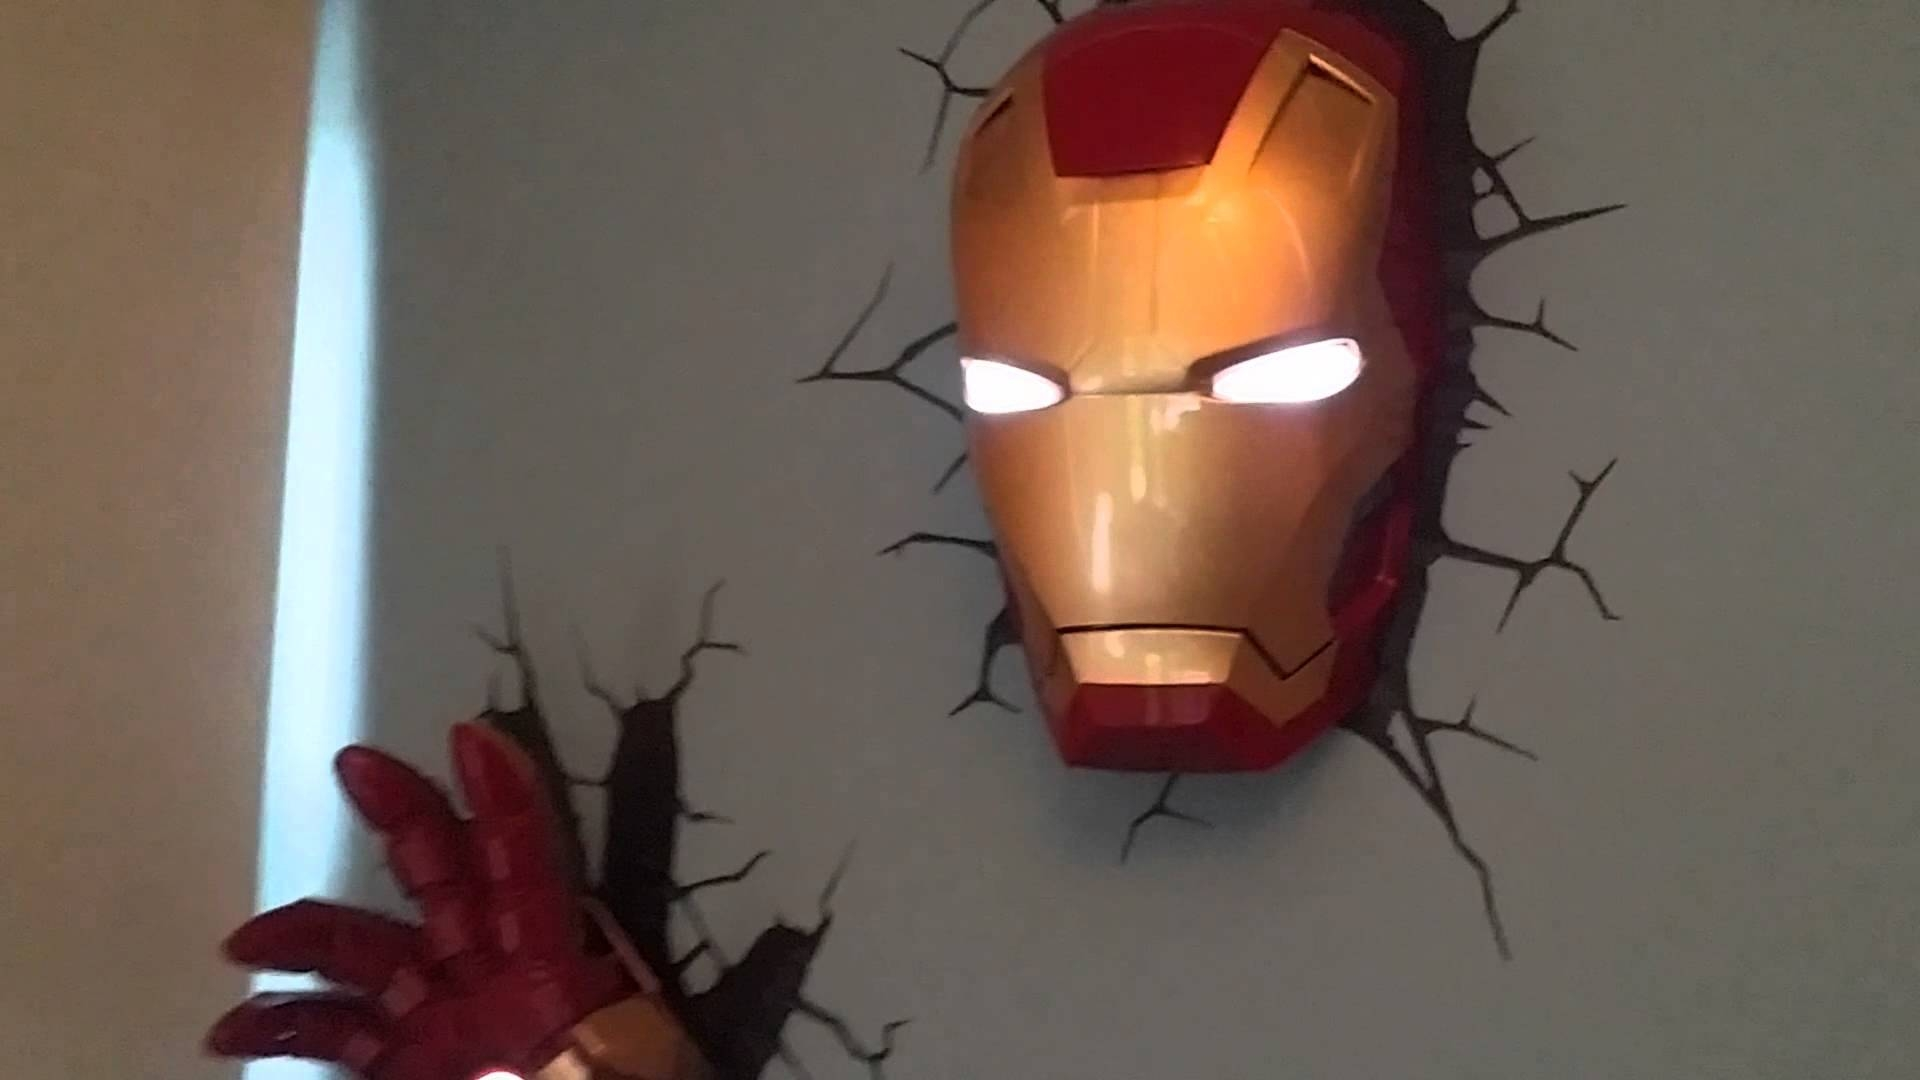 Iron Man 3d Deco Light Helmet And Hand On Wall – Youtube Pertaining To Most Recently Released 3d Wall Art Iron Man Night Light (View 6 of 20)